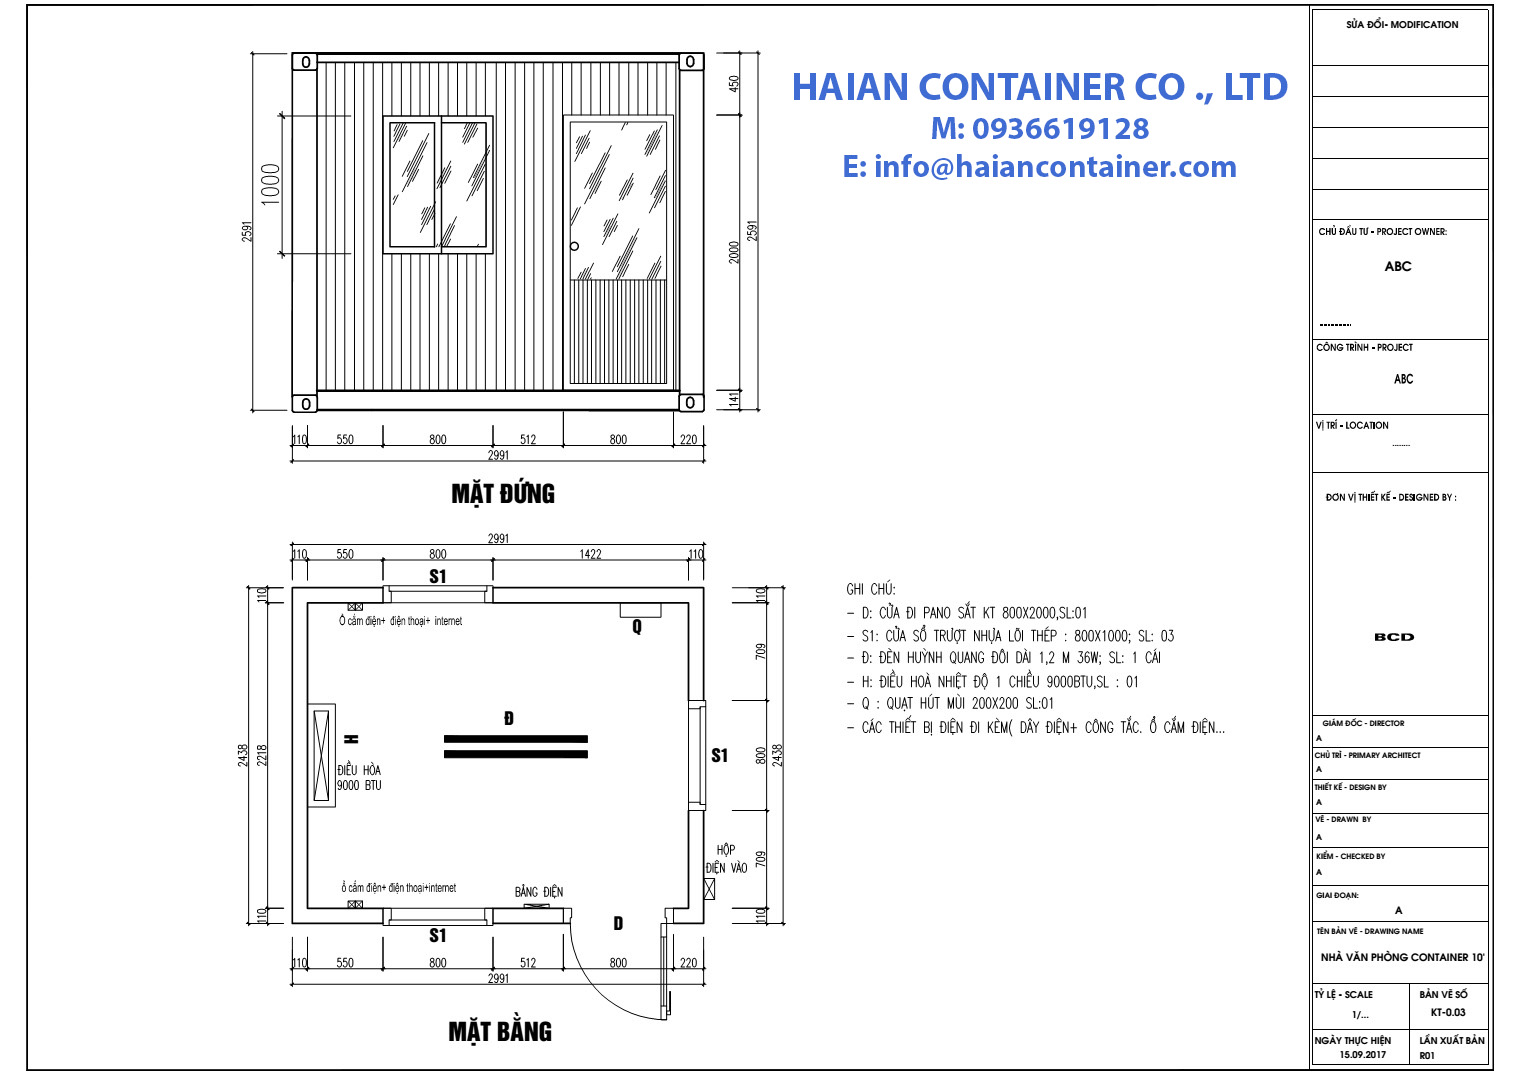 Quy cách container văn phòng 10 feet tại Hải An Container